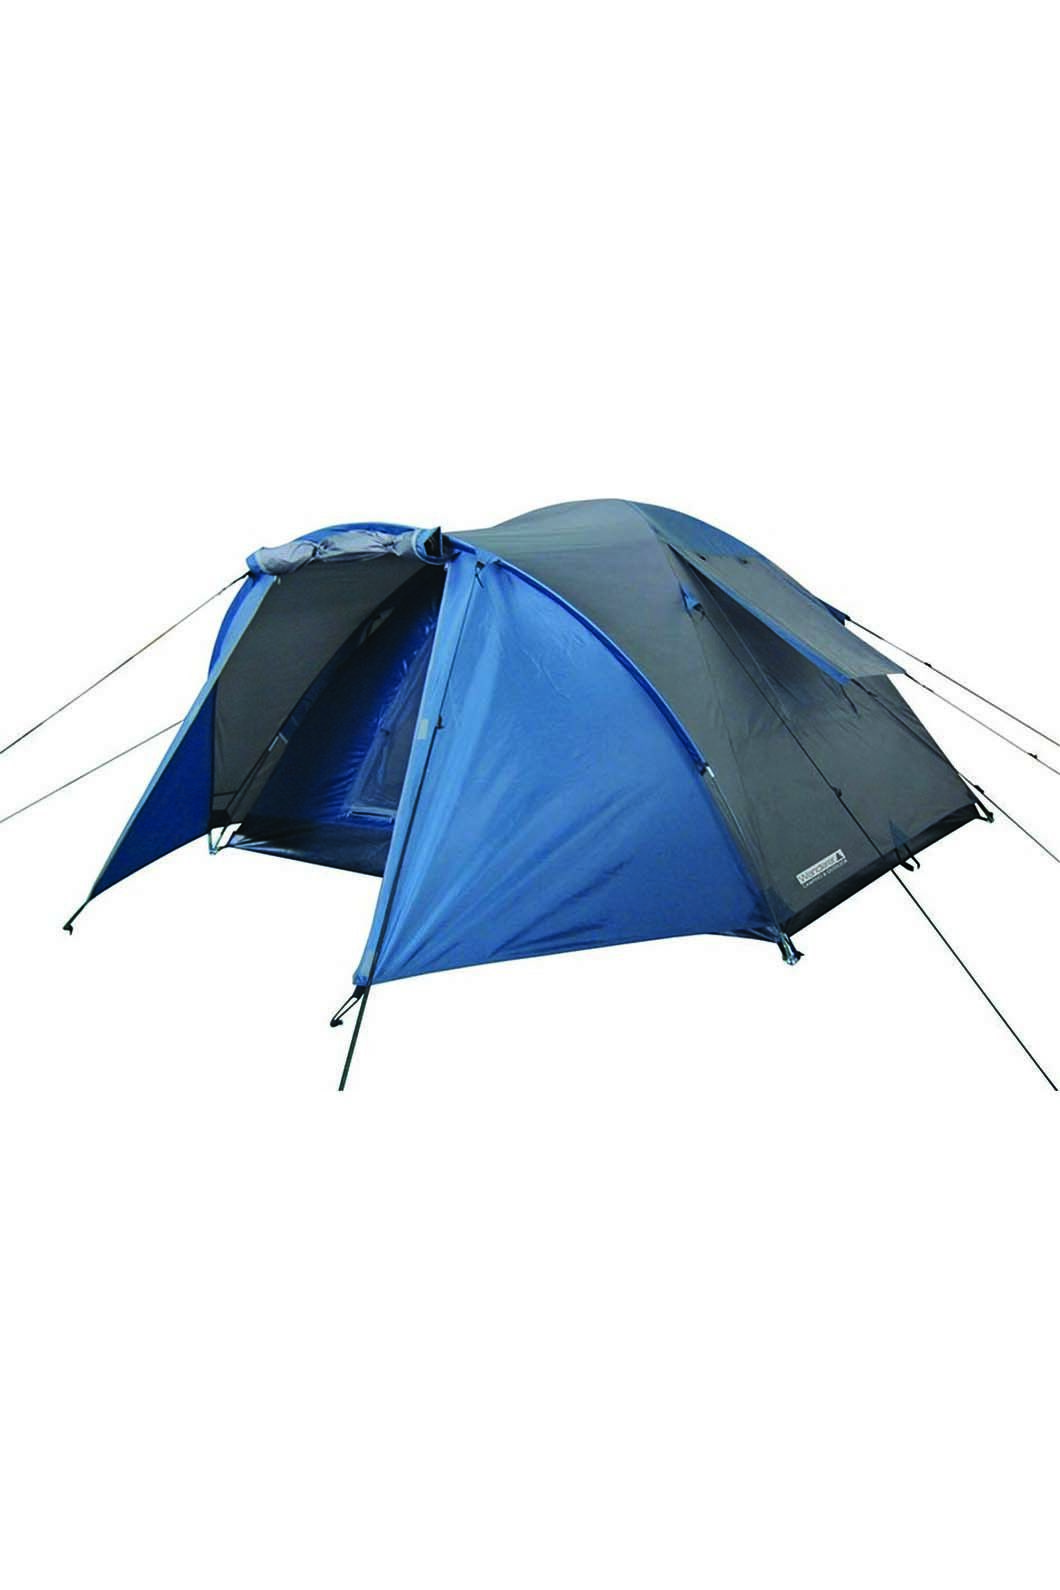 Wanderer Magnitude 3V 3 Person Dome Tent, None, hi-res